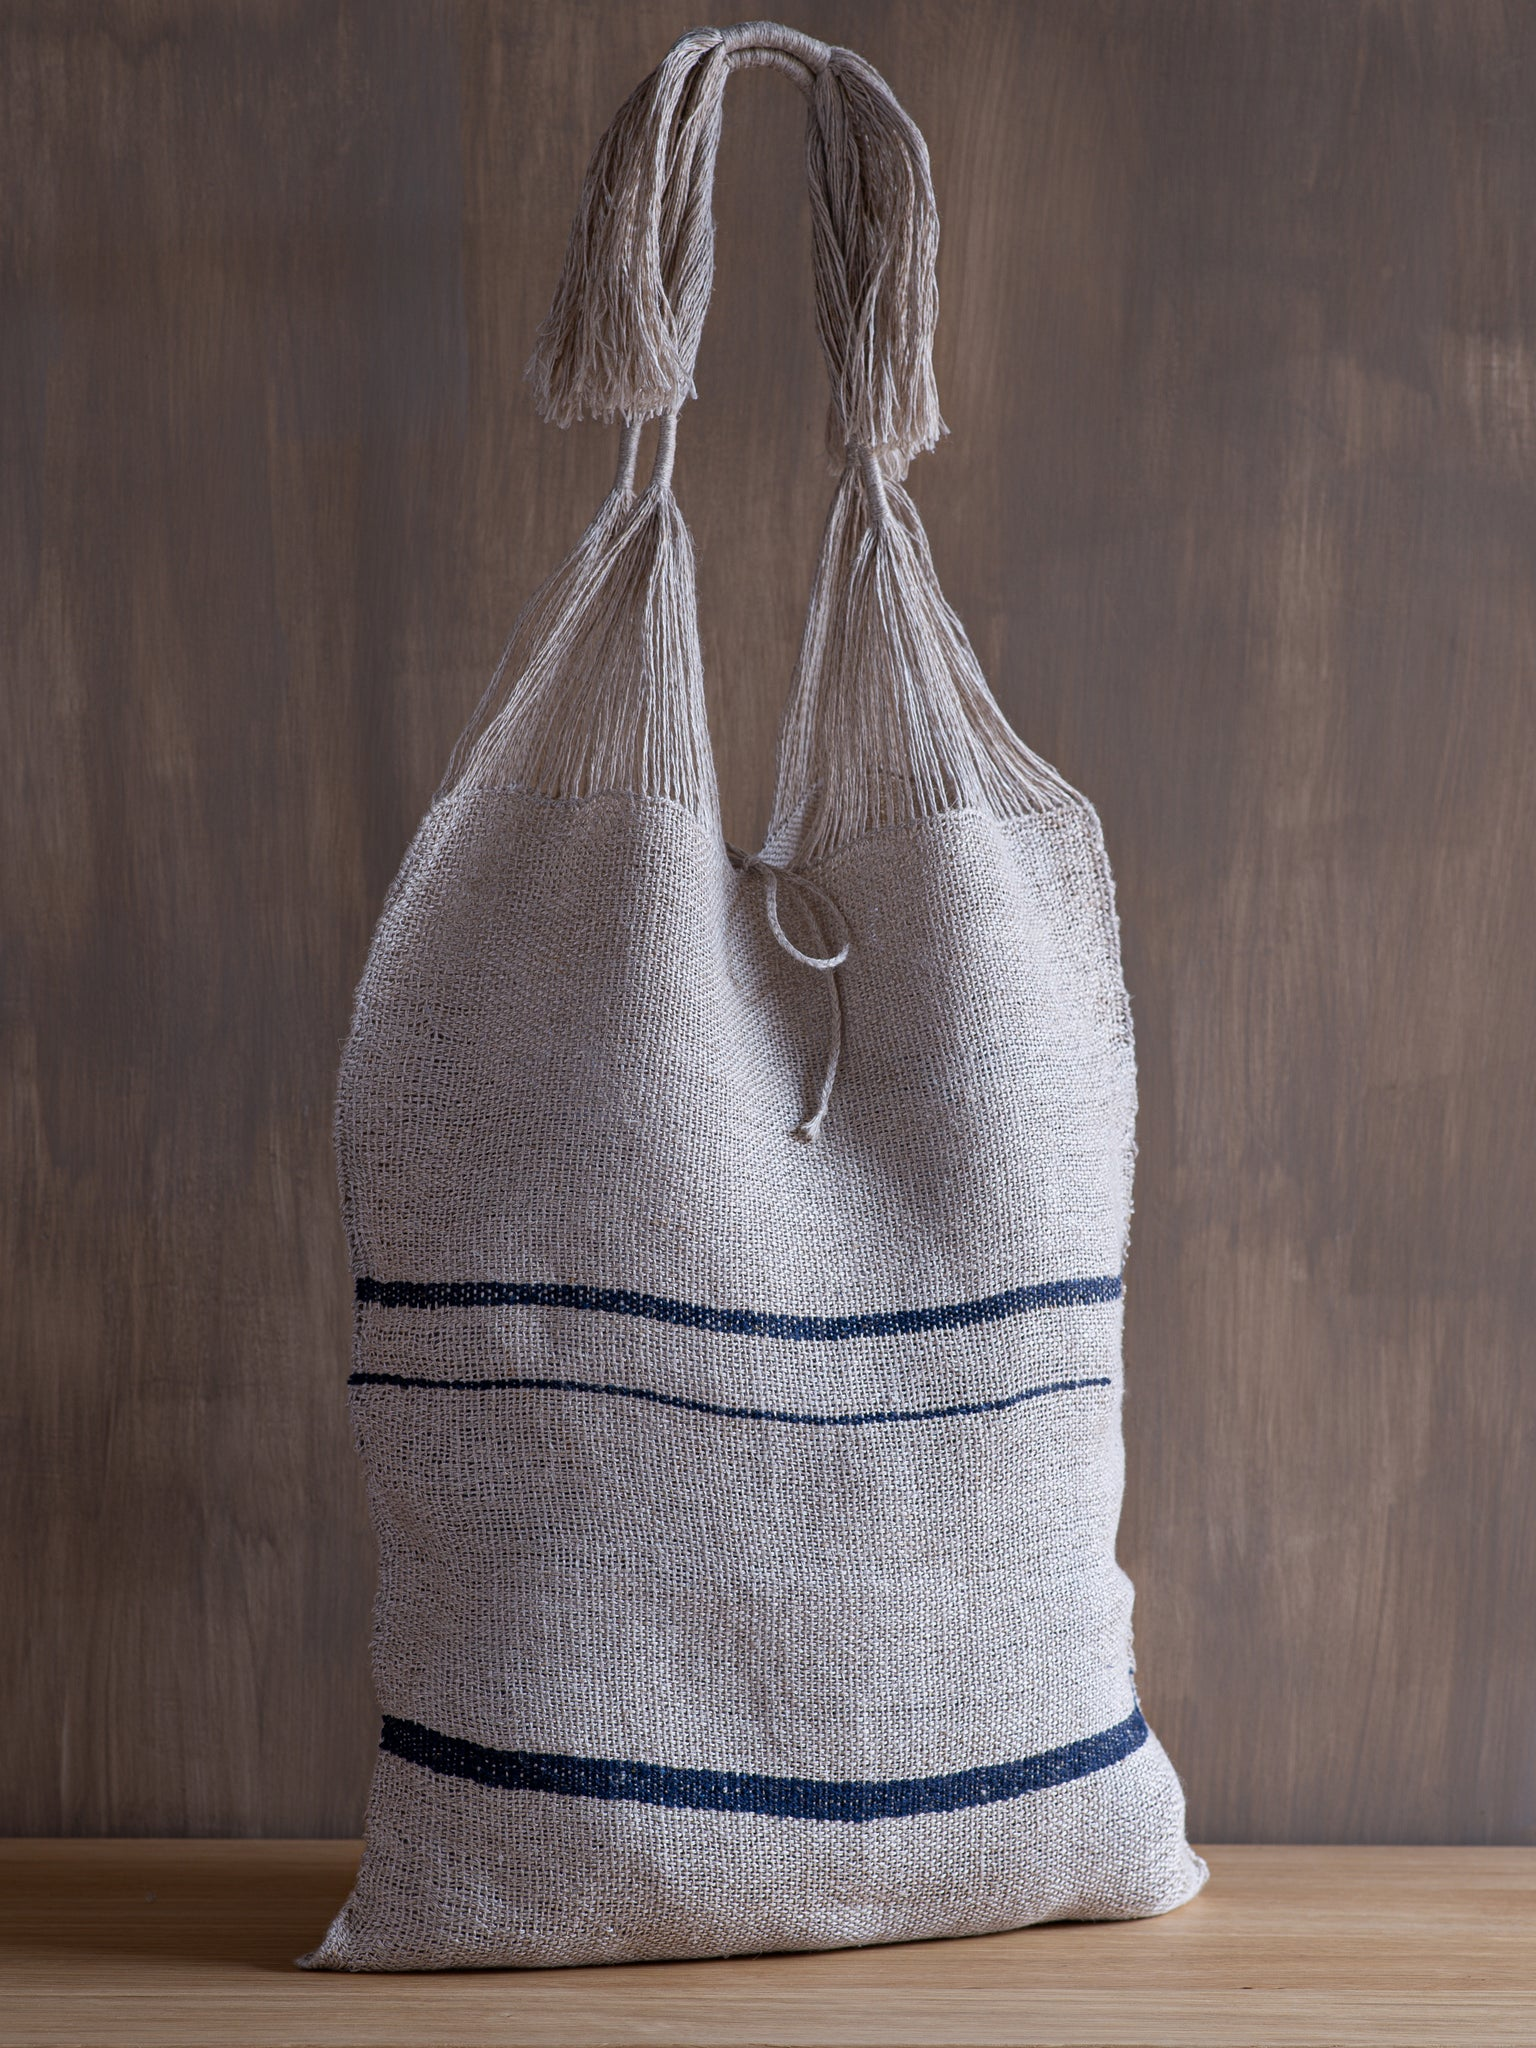 Handwoven Tote Bag - Indigo Stripe